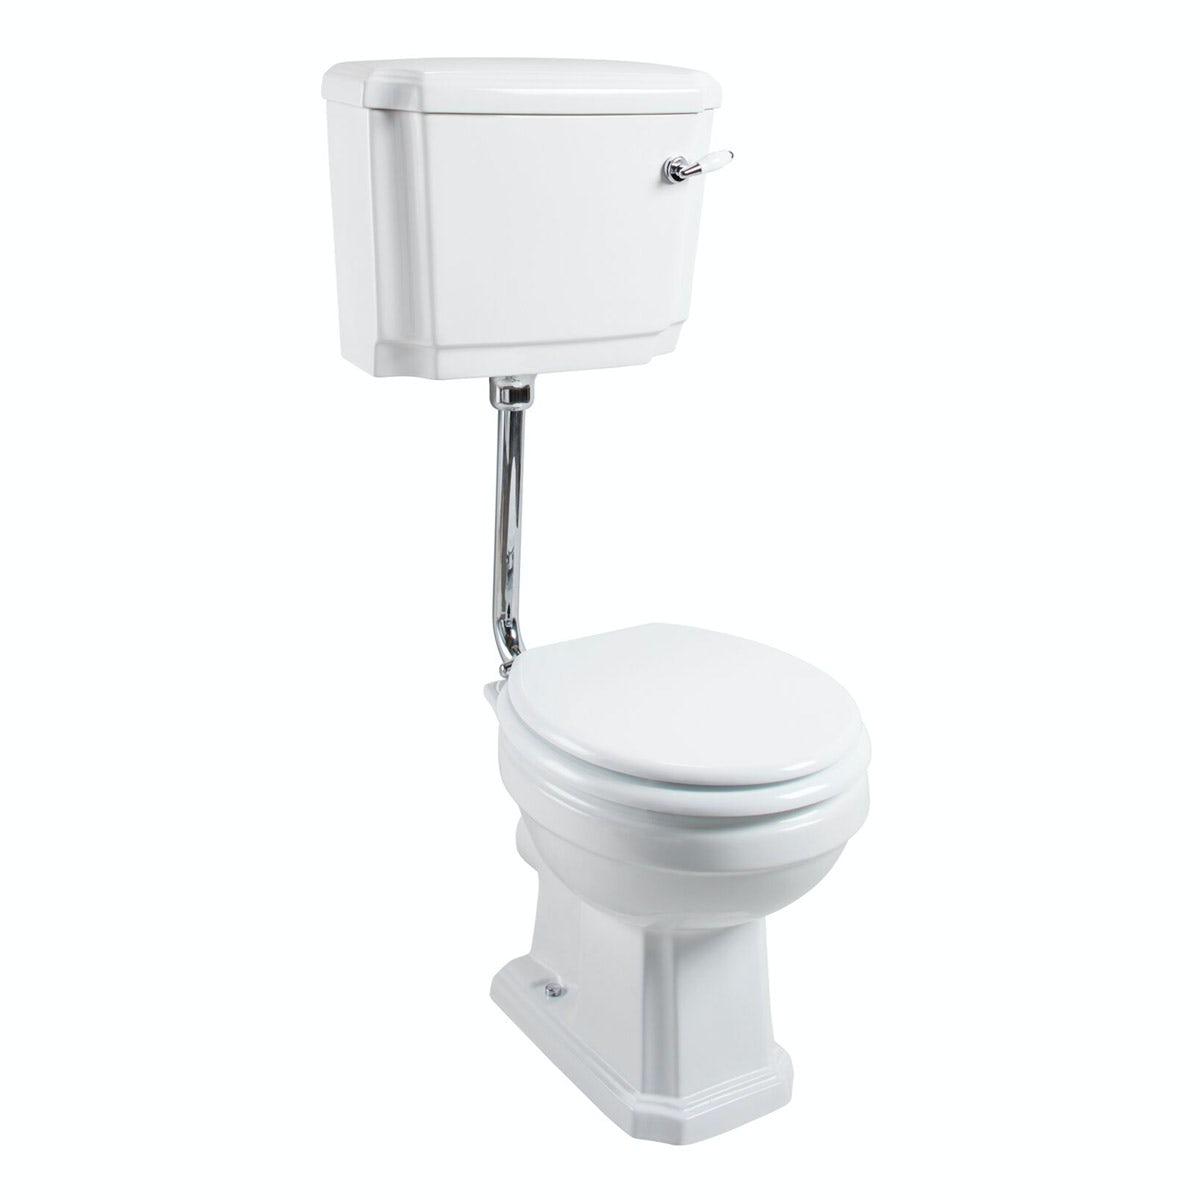 The Bath Co. Cromford low level toilet inc white soft close seat